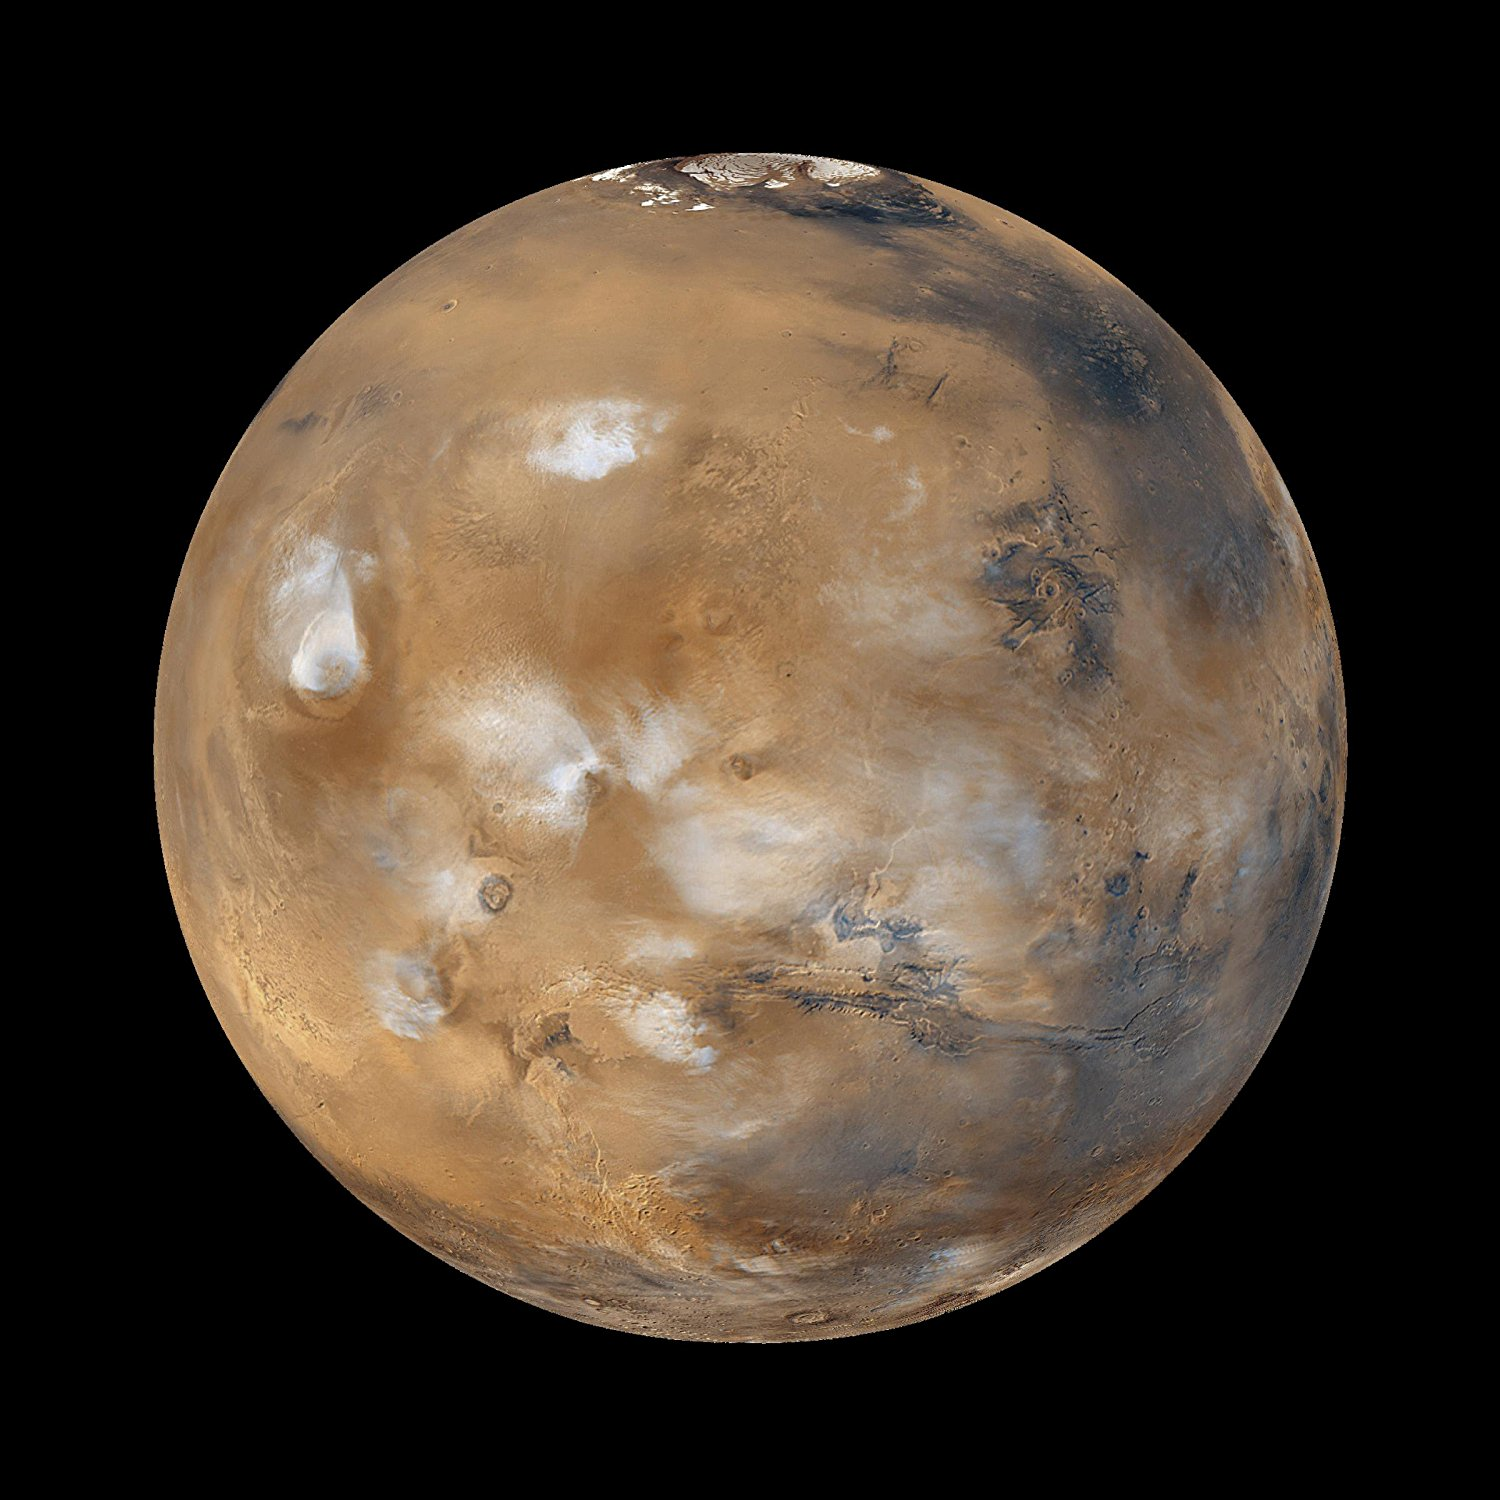 Planet Mars NASA Solar System 8 x 10 Photo Picture